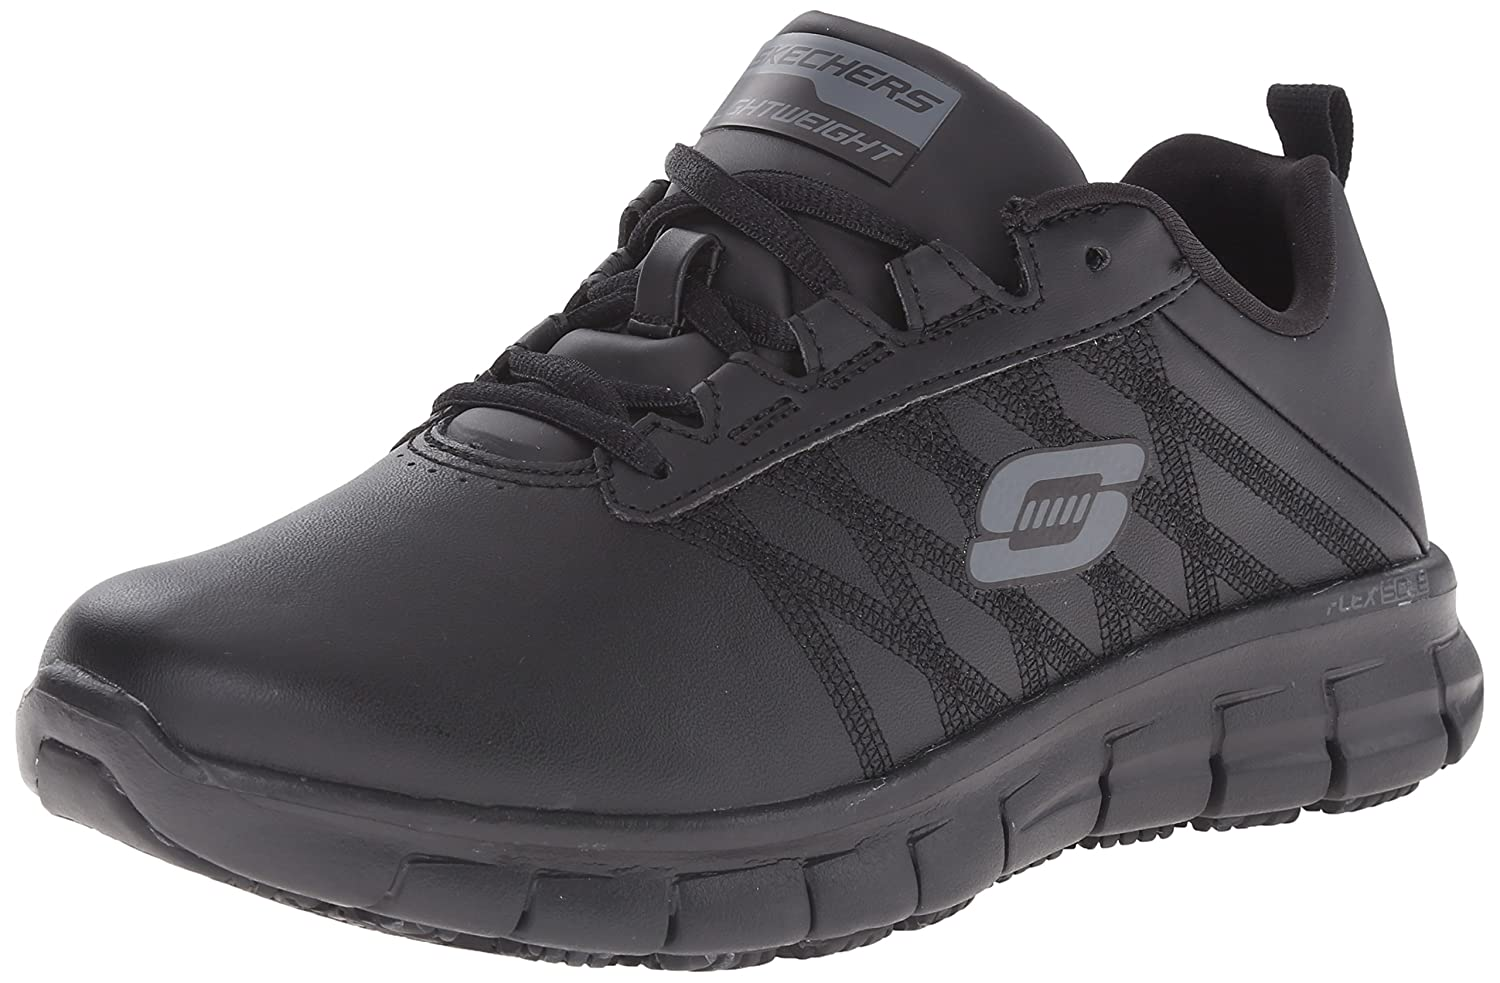 Skechers for Work Women's Sure Track Erath Athletic Lace Slip Resistant Boot B00UBJ29MW 9 B(M) US|Black